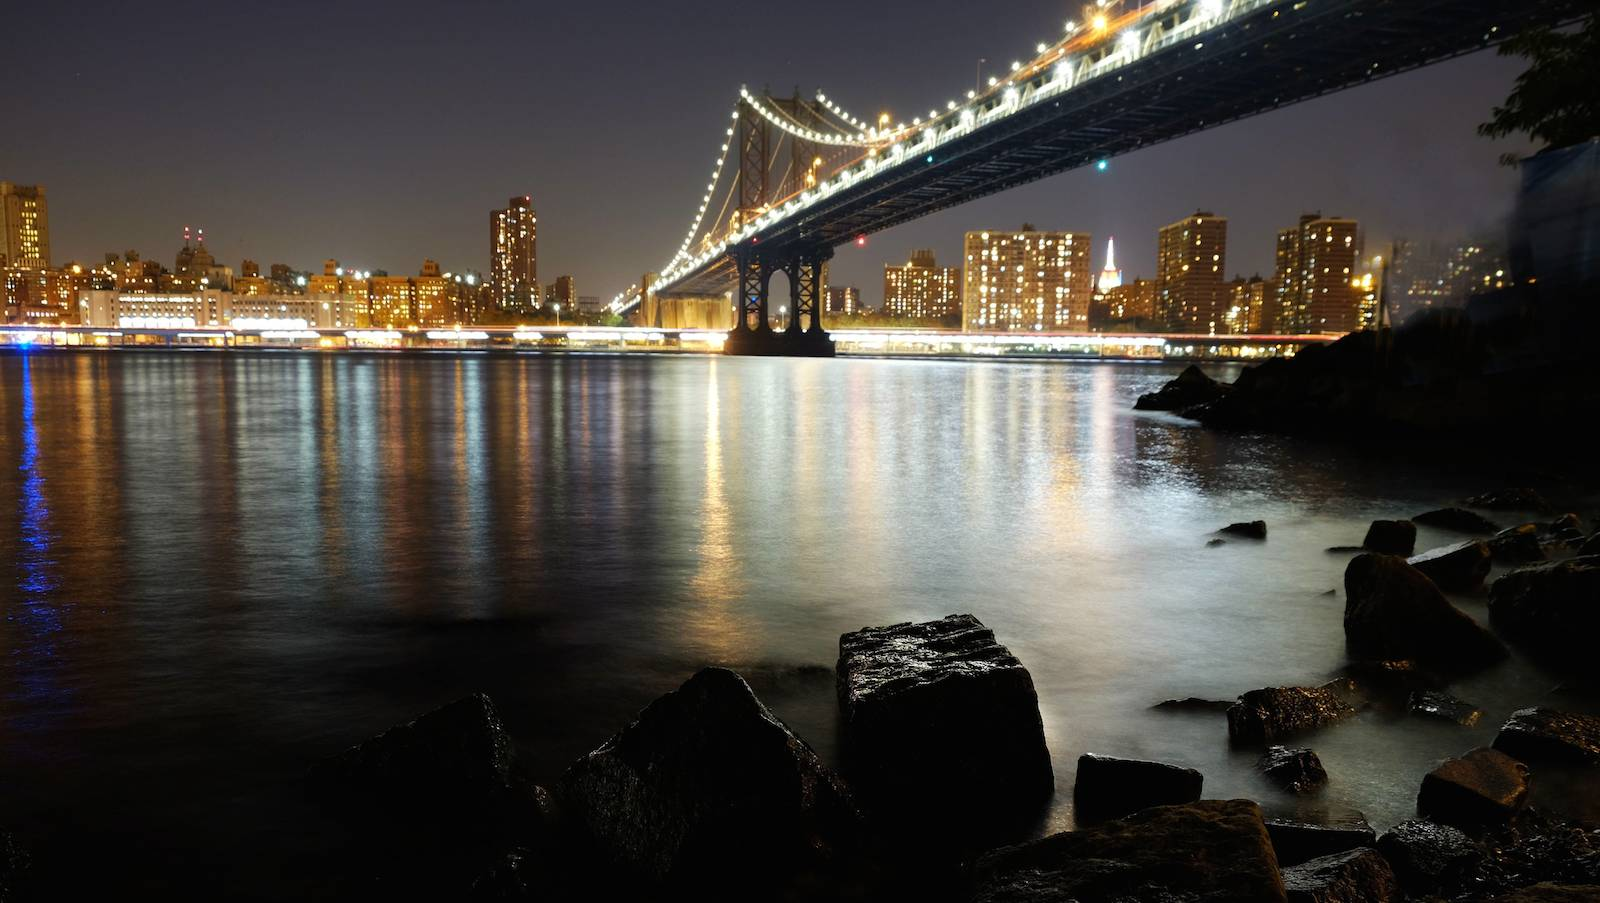 fujifilm, photo-tour, photo-contest, new-york, brooklyn-bride, arts